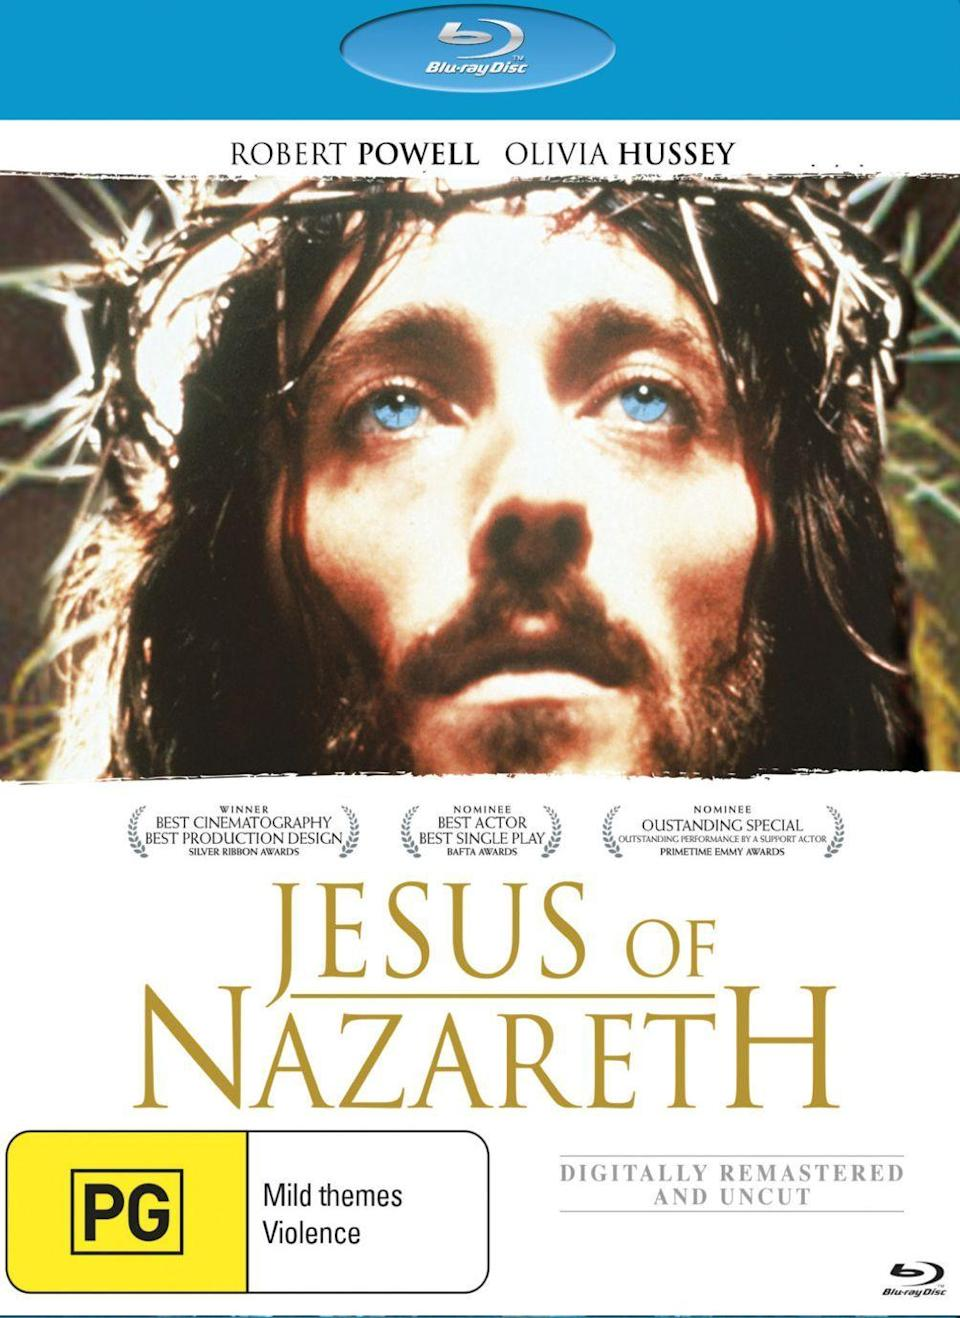 """<p>The award-winning TV miniseries, starring Robert Powell and Olivia Hussey, with a cameo by Laurence Olivier (Nicodemus), is one the most popular film adaptations of the Easter story. It's worth noting that the movie is rated PG for mild depictions of violence and may not be suitable for young children. </p><p><a class=""""link rapid-noclick-resp"""" href=""""https://www.amazon.com/Jesus-Nazareth-Robert-Powell/dp/B075B2G56S?tag=syn-yahoo-20&ascsubtag=%5Bartid%7C10050.g.15928562%5Bsrc%7Cyahoo-us"""" rel=""""nofollow noopener"""" target=""""_blank"""" data-ylk=""""slk:STREAM NOW"""">STREAM NOW</a></p>"""